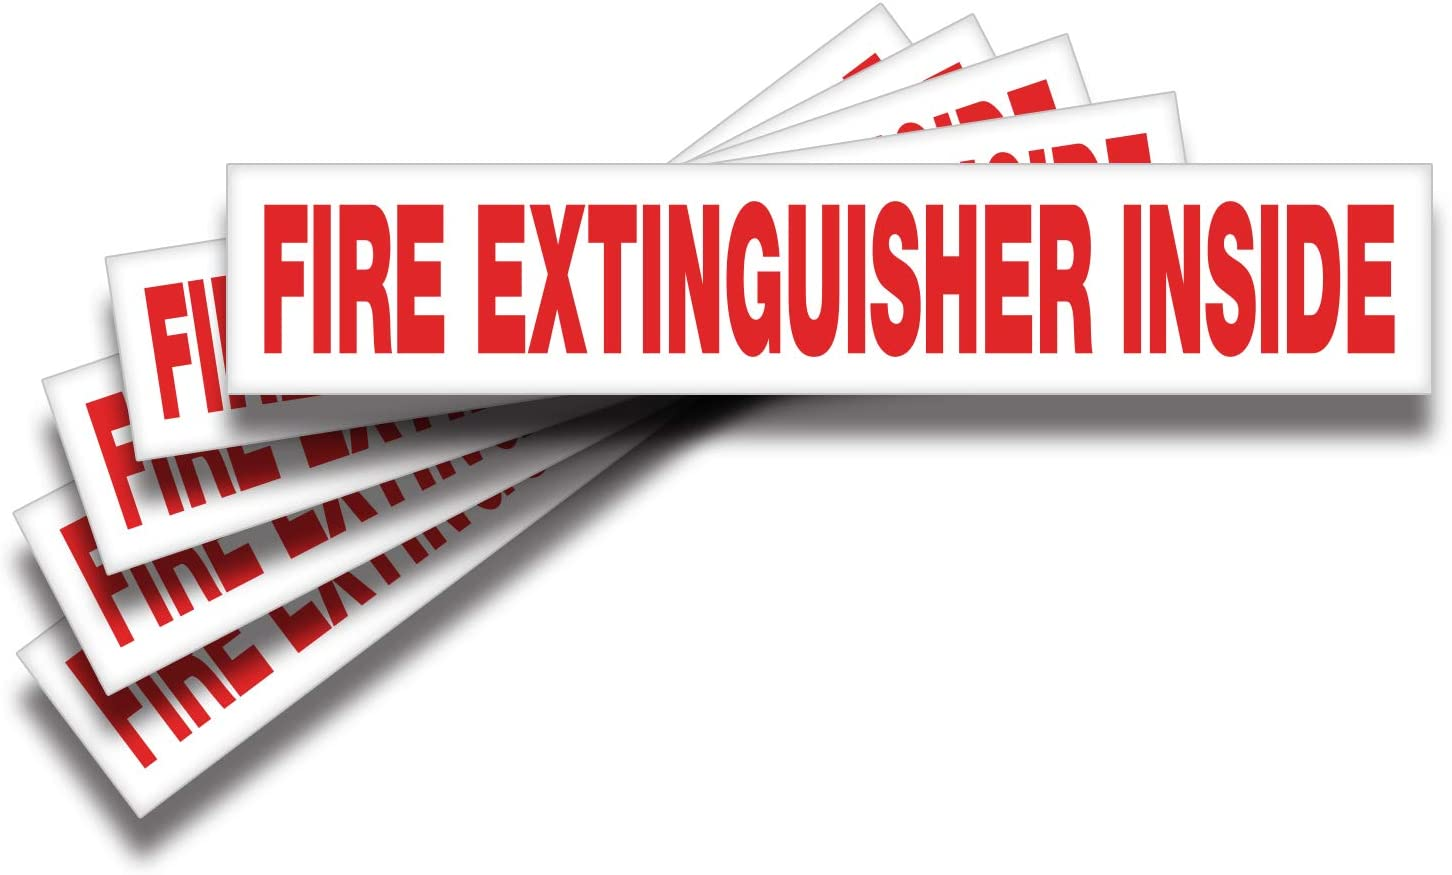 Fire Extinguisher Inside Signs Stickers – 5 Pack 9x1.7 Inch – Premium Self-Adhesive Vinyl, Laminated for Ultimate UV, Weather, Scratch, Water and Fade Resistance, Indoor and Outdoor